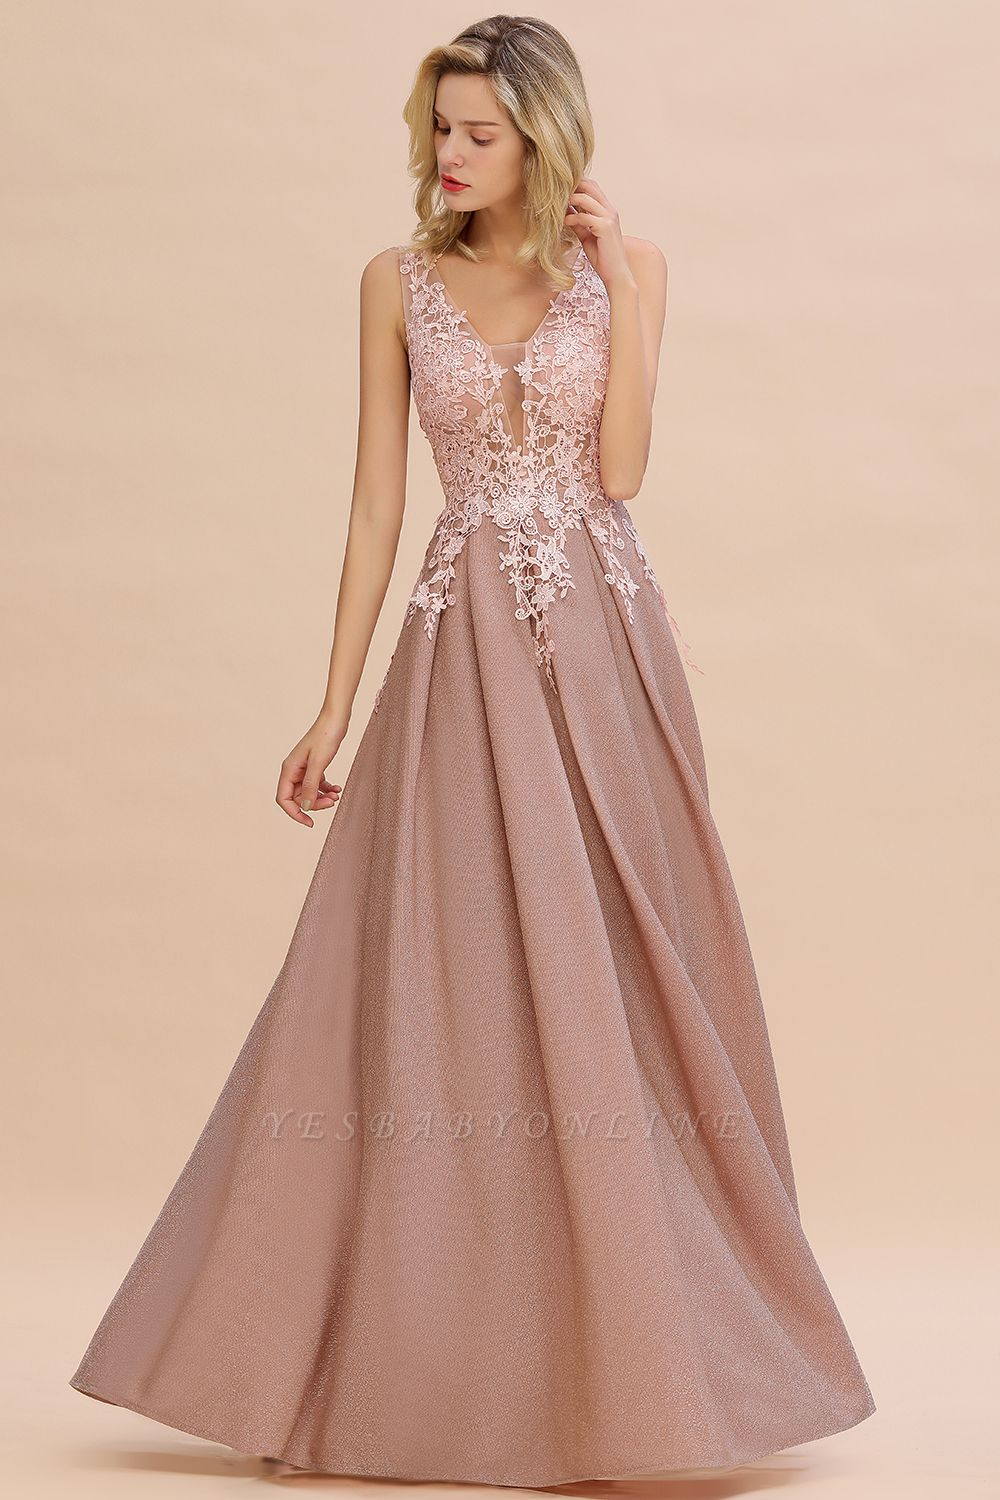 Elegant Sleeveless V-neck Floor Length Appliques Prom Dresses | Cheap Backless Evening Dresses